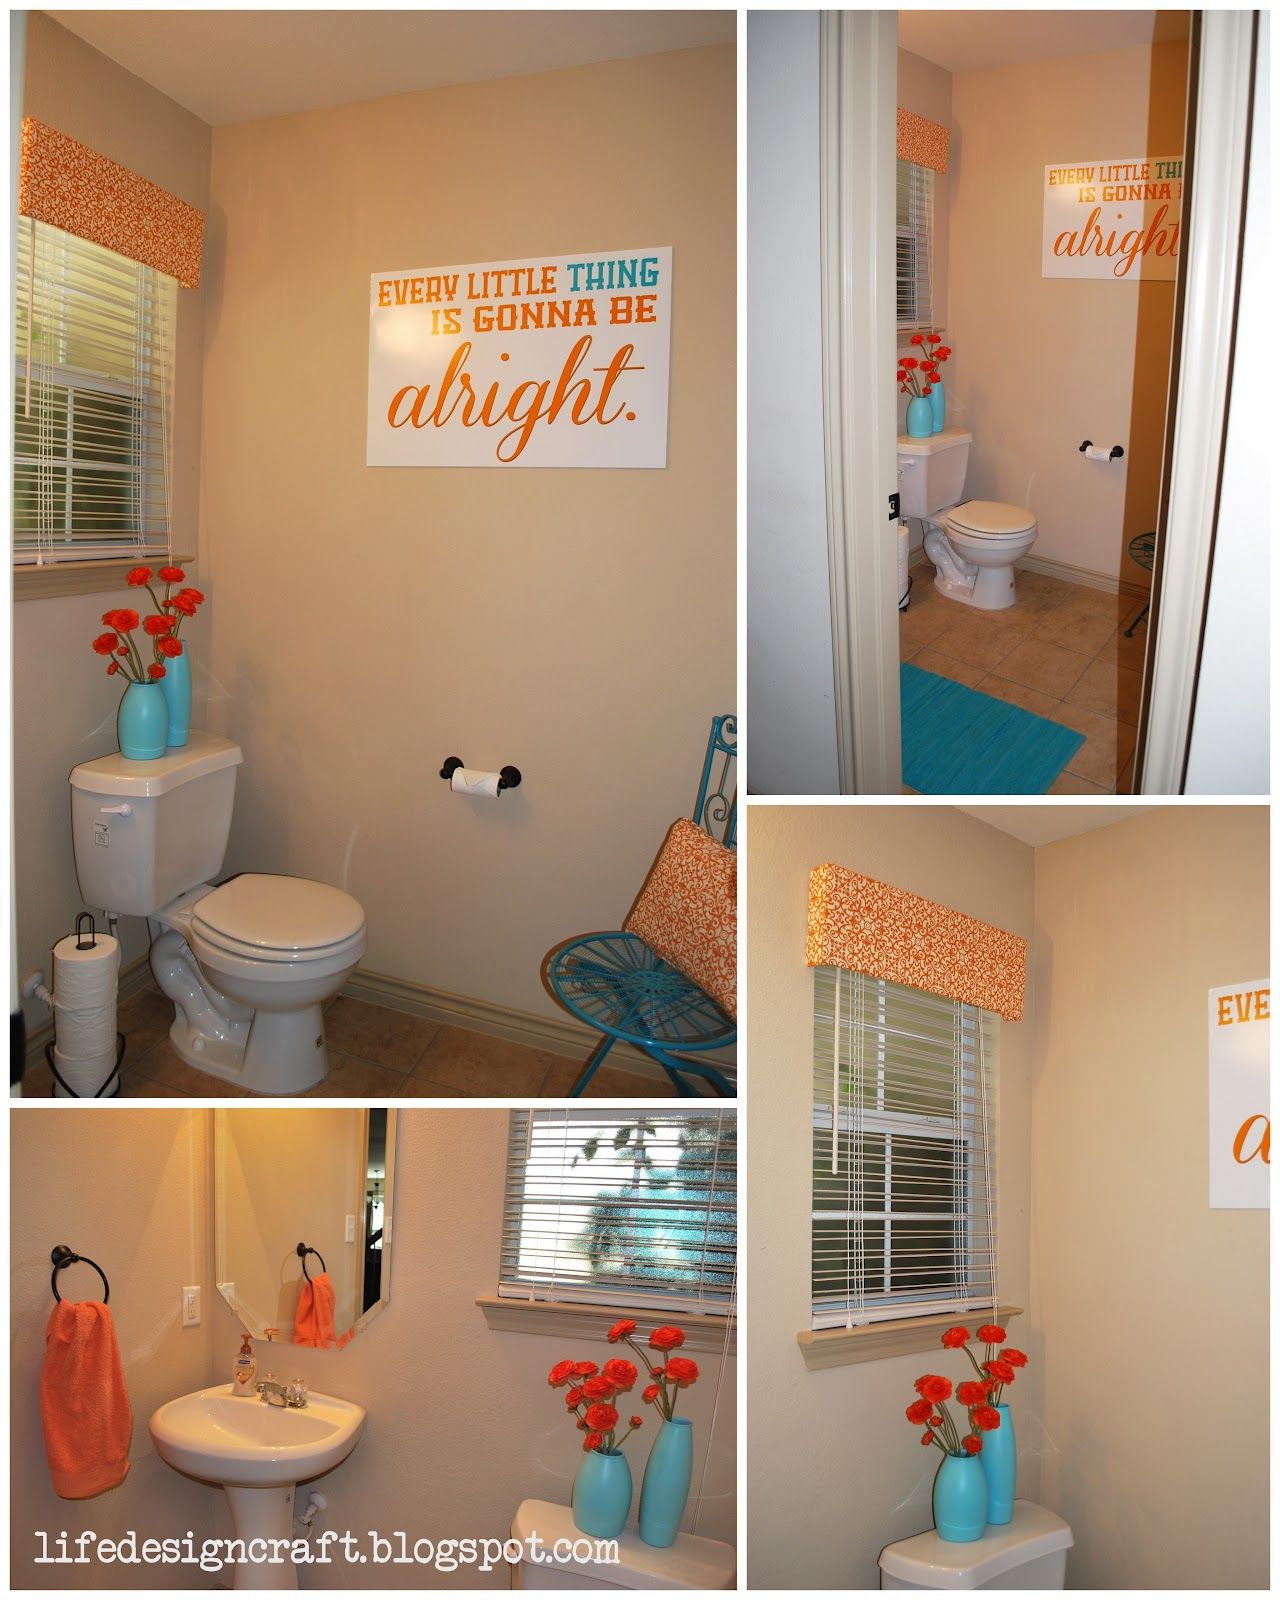 Orange Turquoise Bathroom With Free Print Every Little Thing Is Gonna Be Alright Orange Bathroom Decor Coral Bathroom Decor Orange Bathrooms